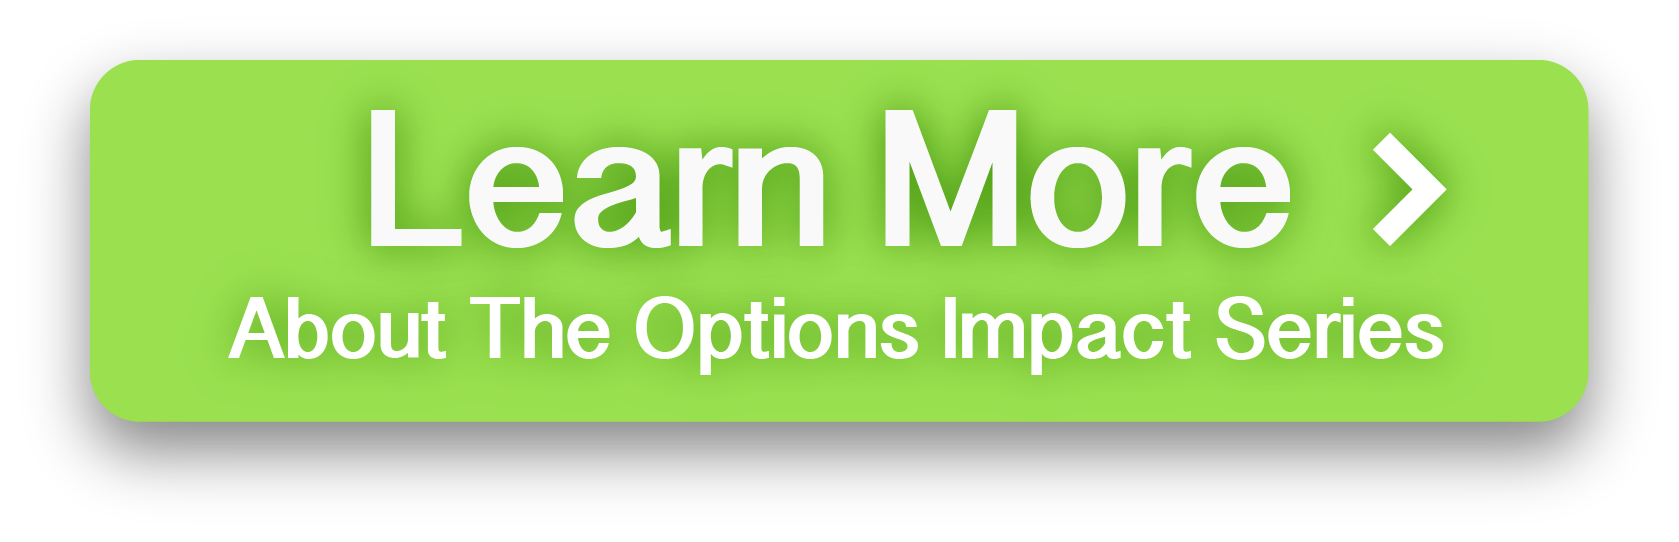 Learn how to option trade